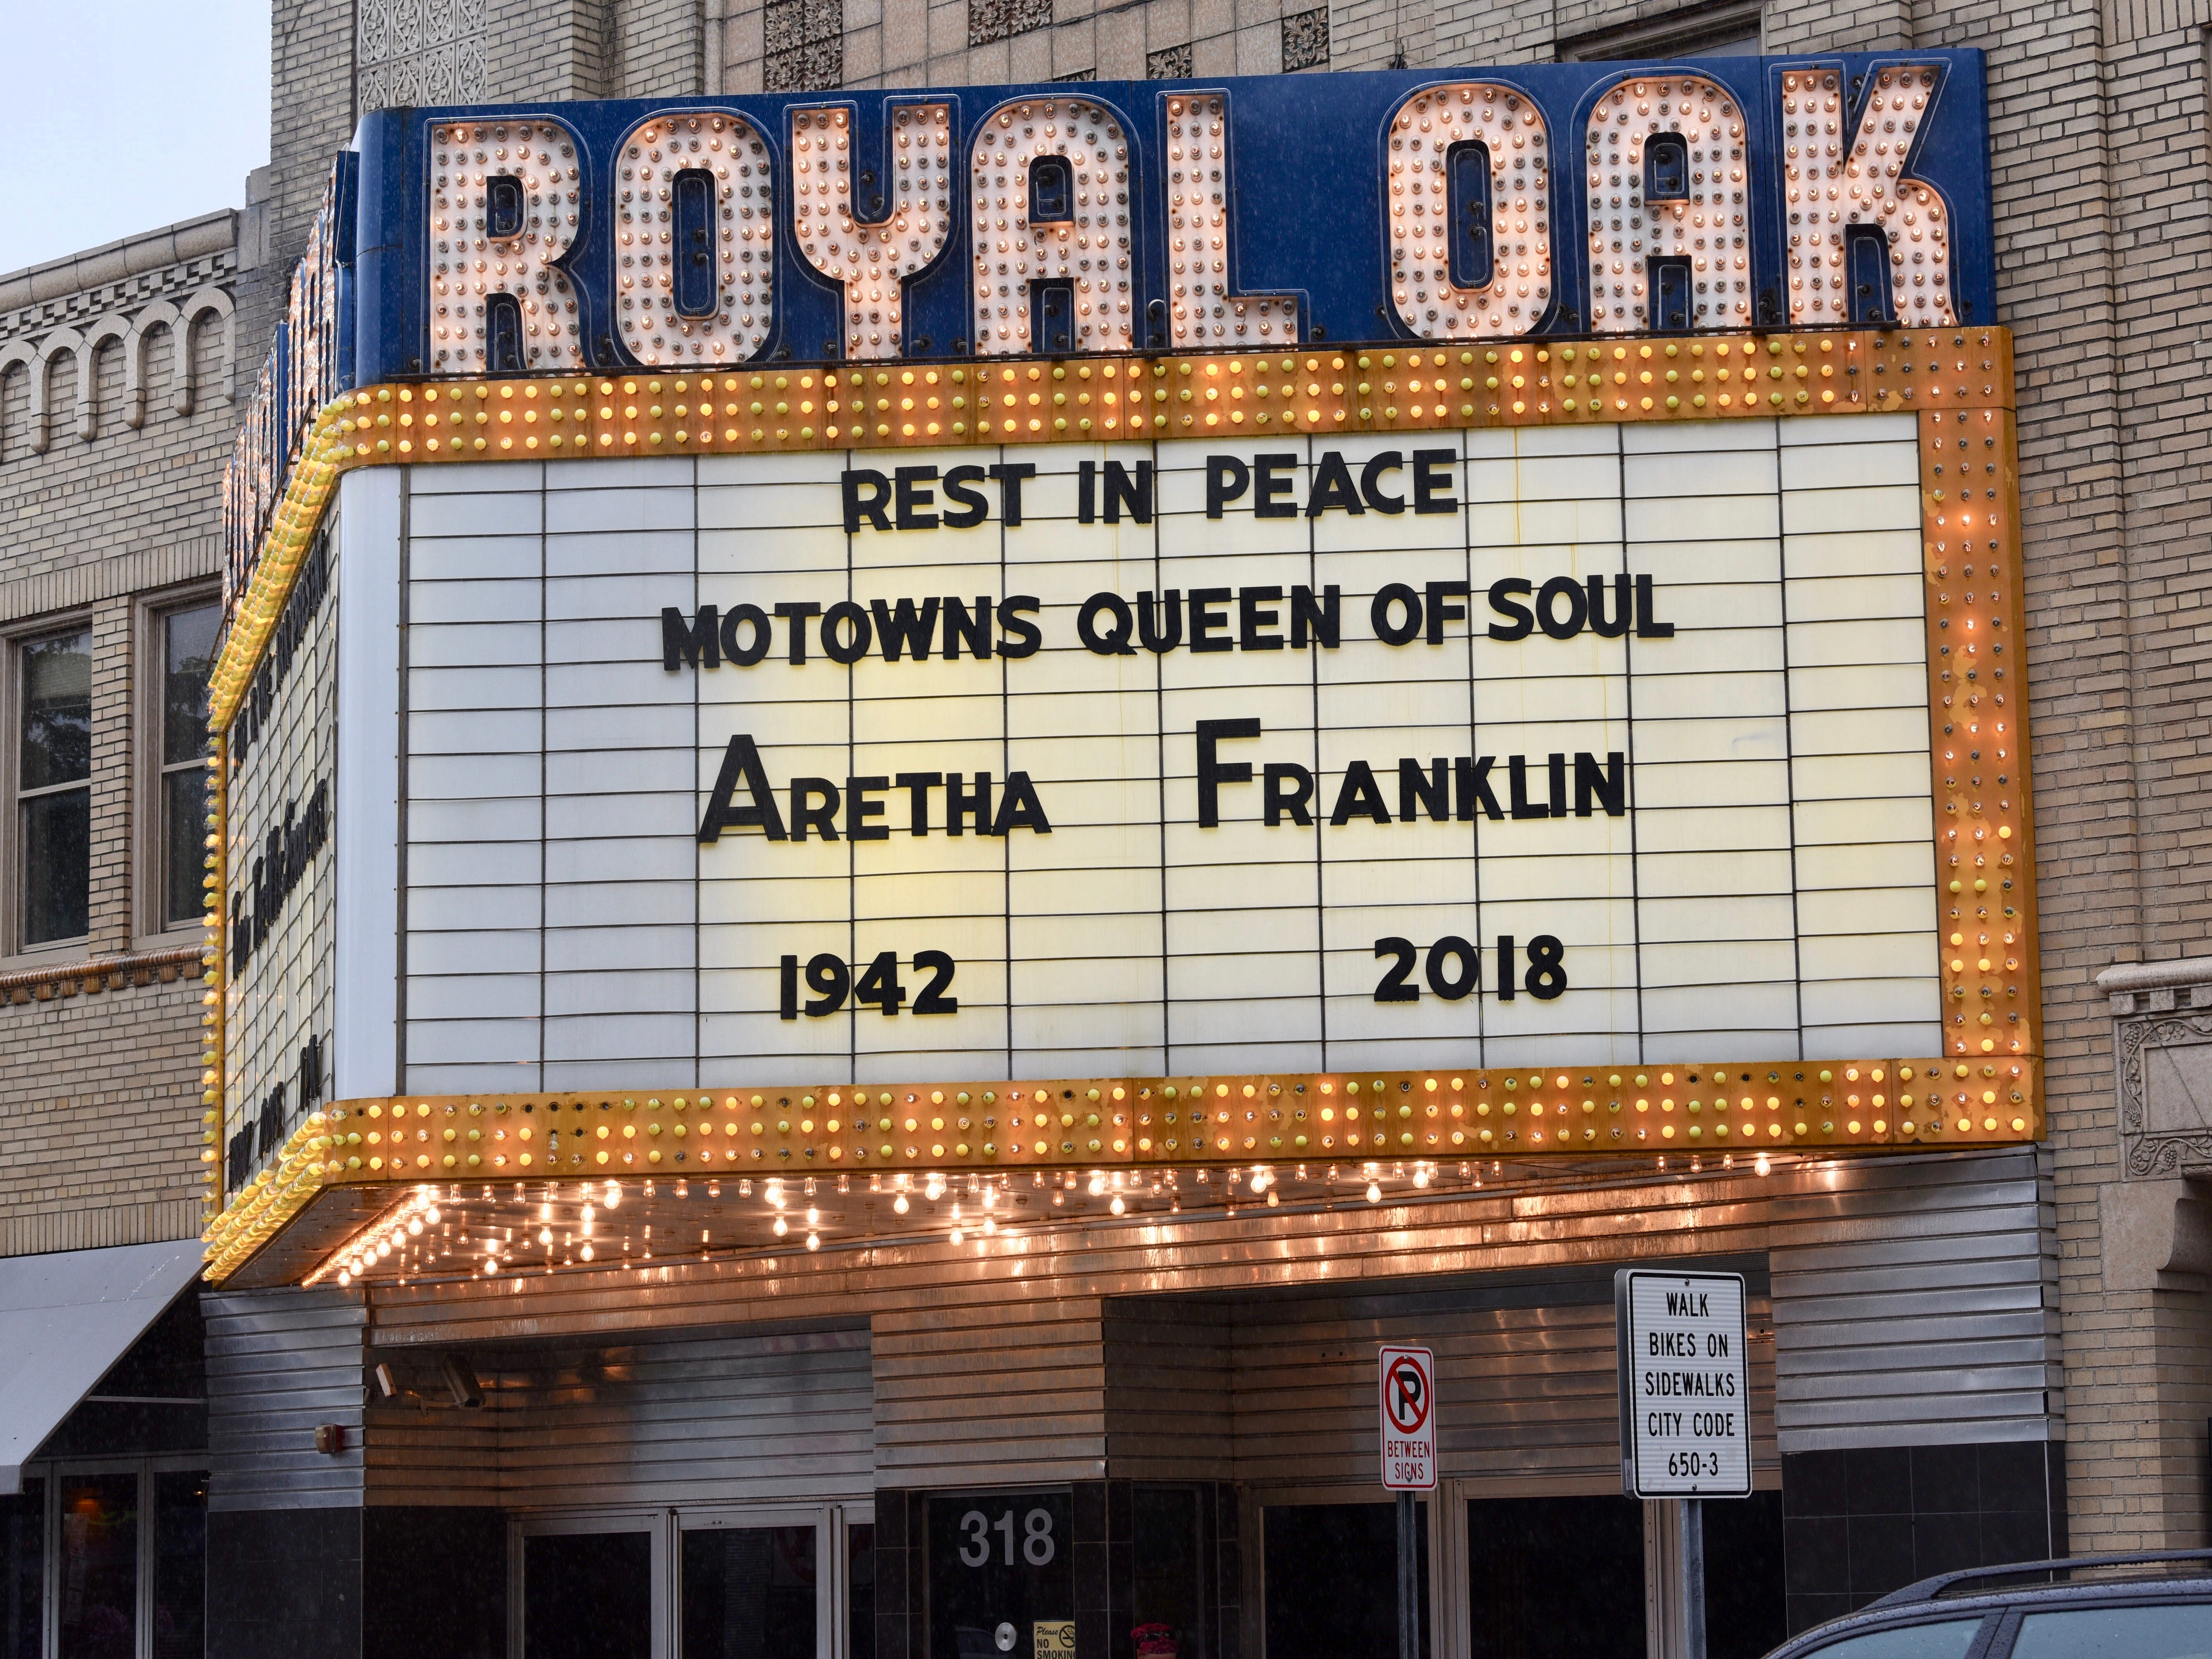 The marquee at the Royal Oak Music Theatre celebrates the life of the Queen of Soul, Aretha Franklin.